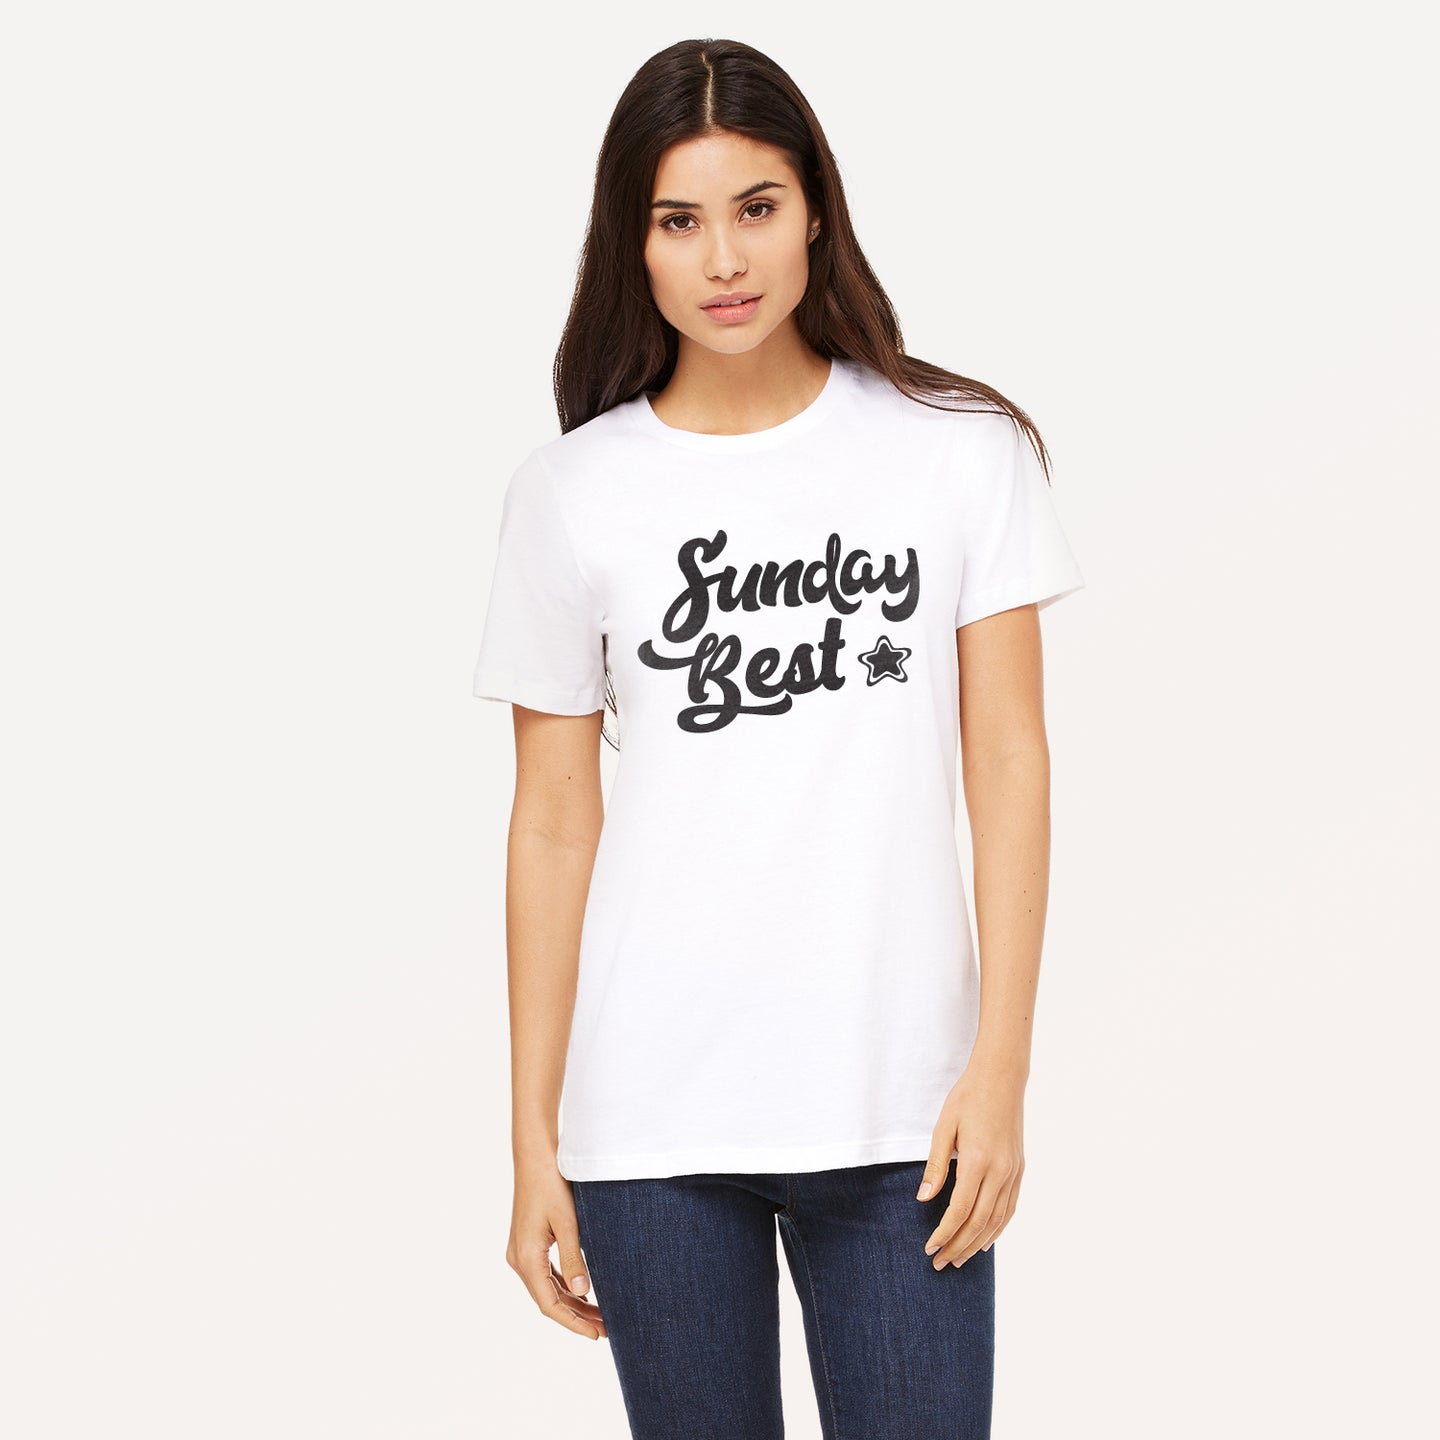 Sunday Best graphic screenprinted in black on a white unisex relaxed cotton jersey t-shirt